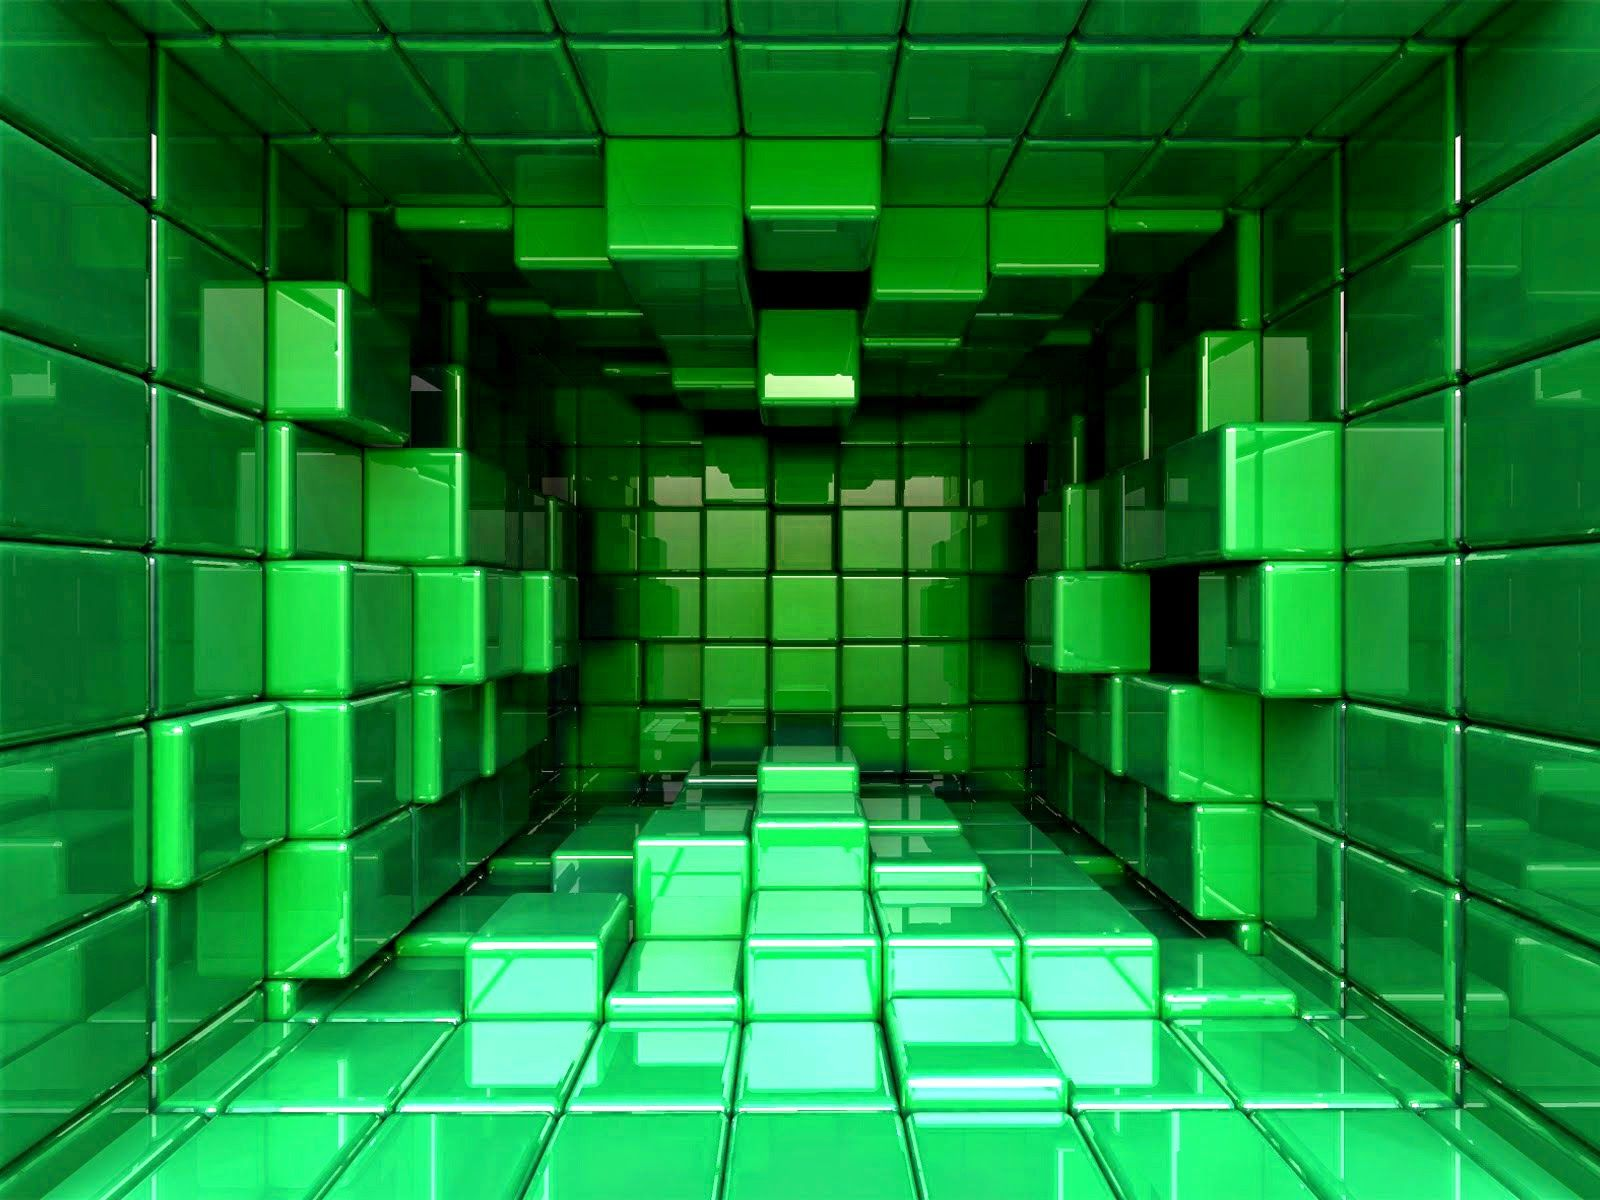 3d Wallpapers Widescreen Wallpaper Desktop Wallpaper 3d Cube Wallpaper